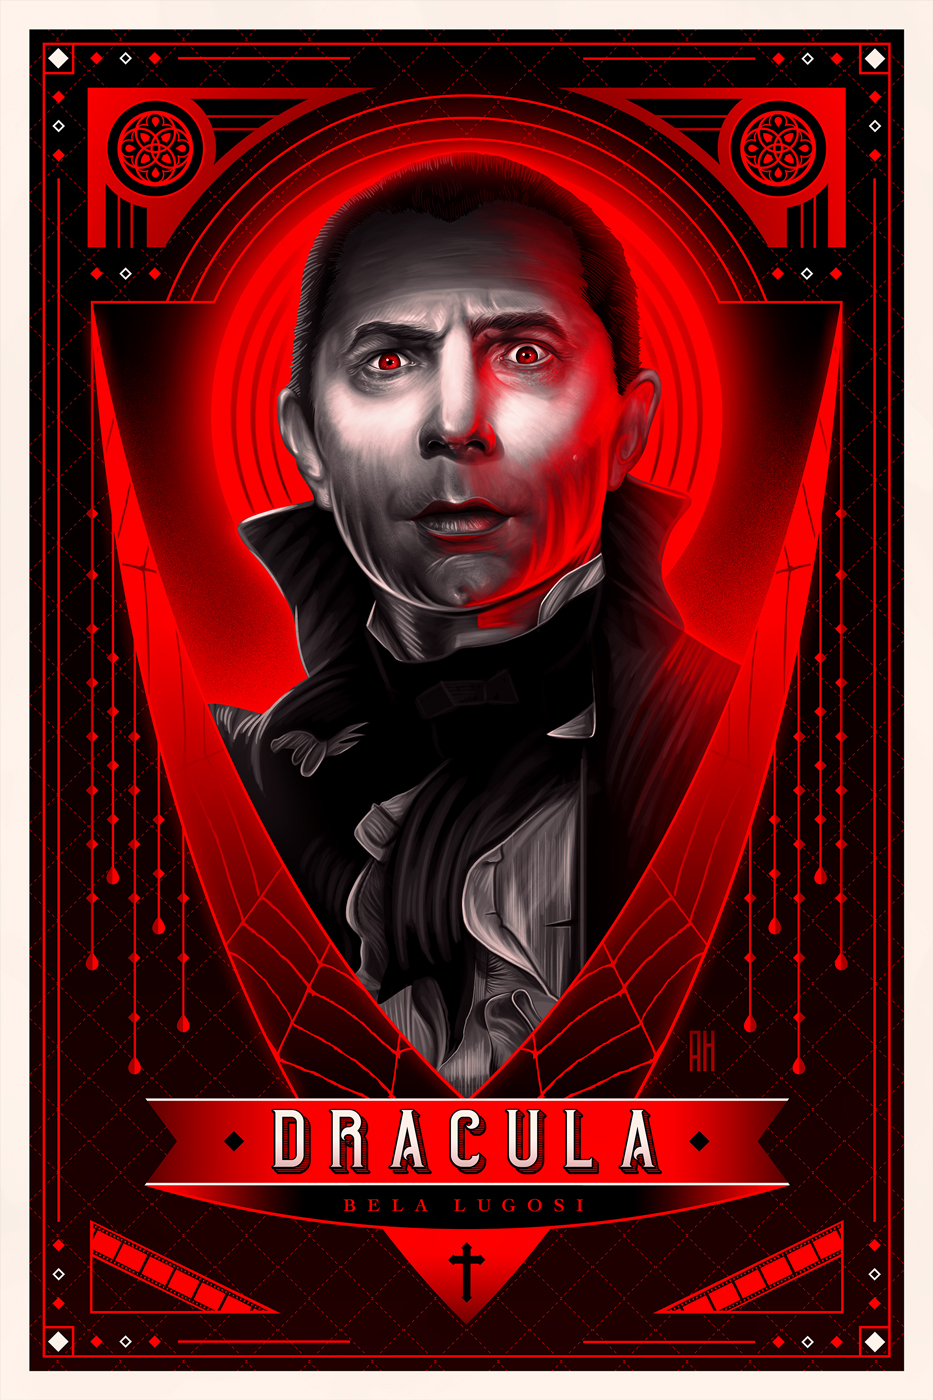 dracula_alexhess_web_wc.jpg